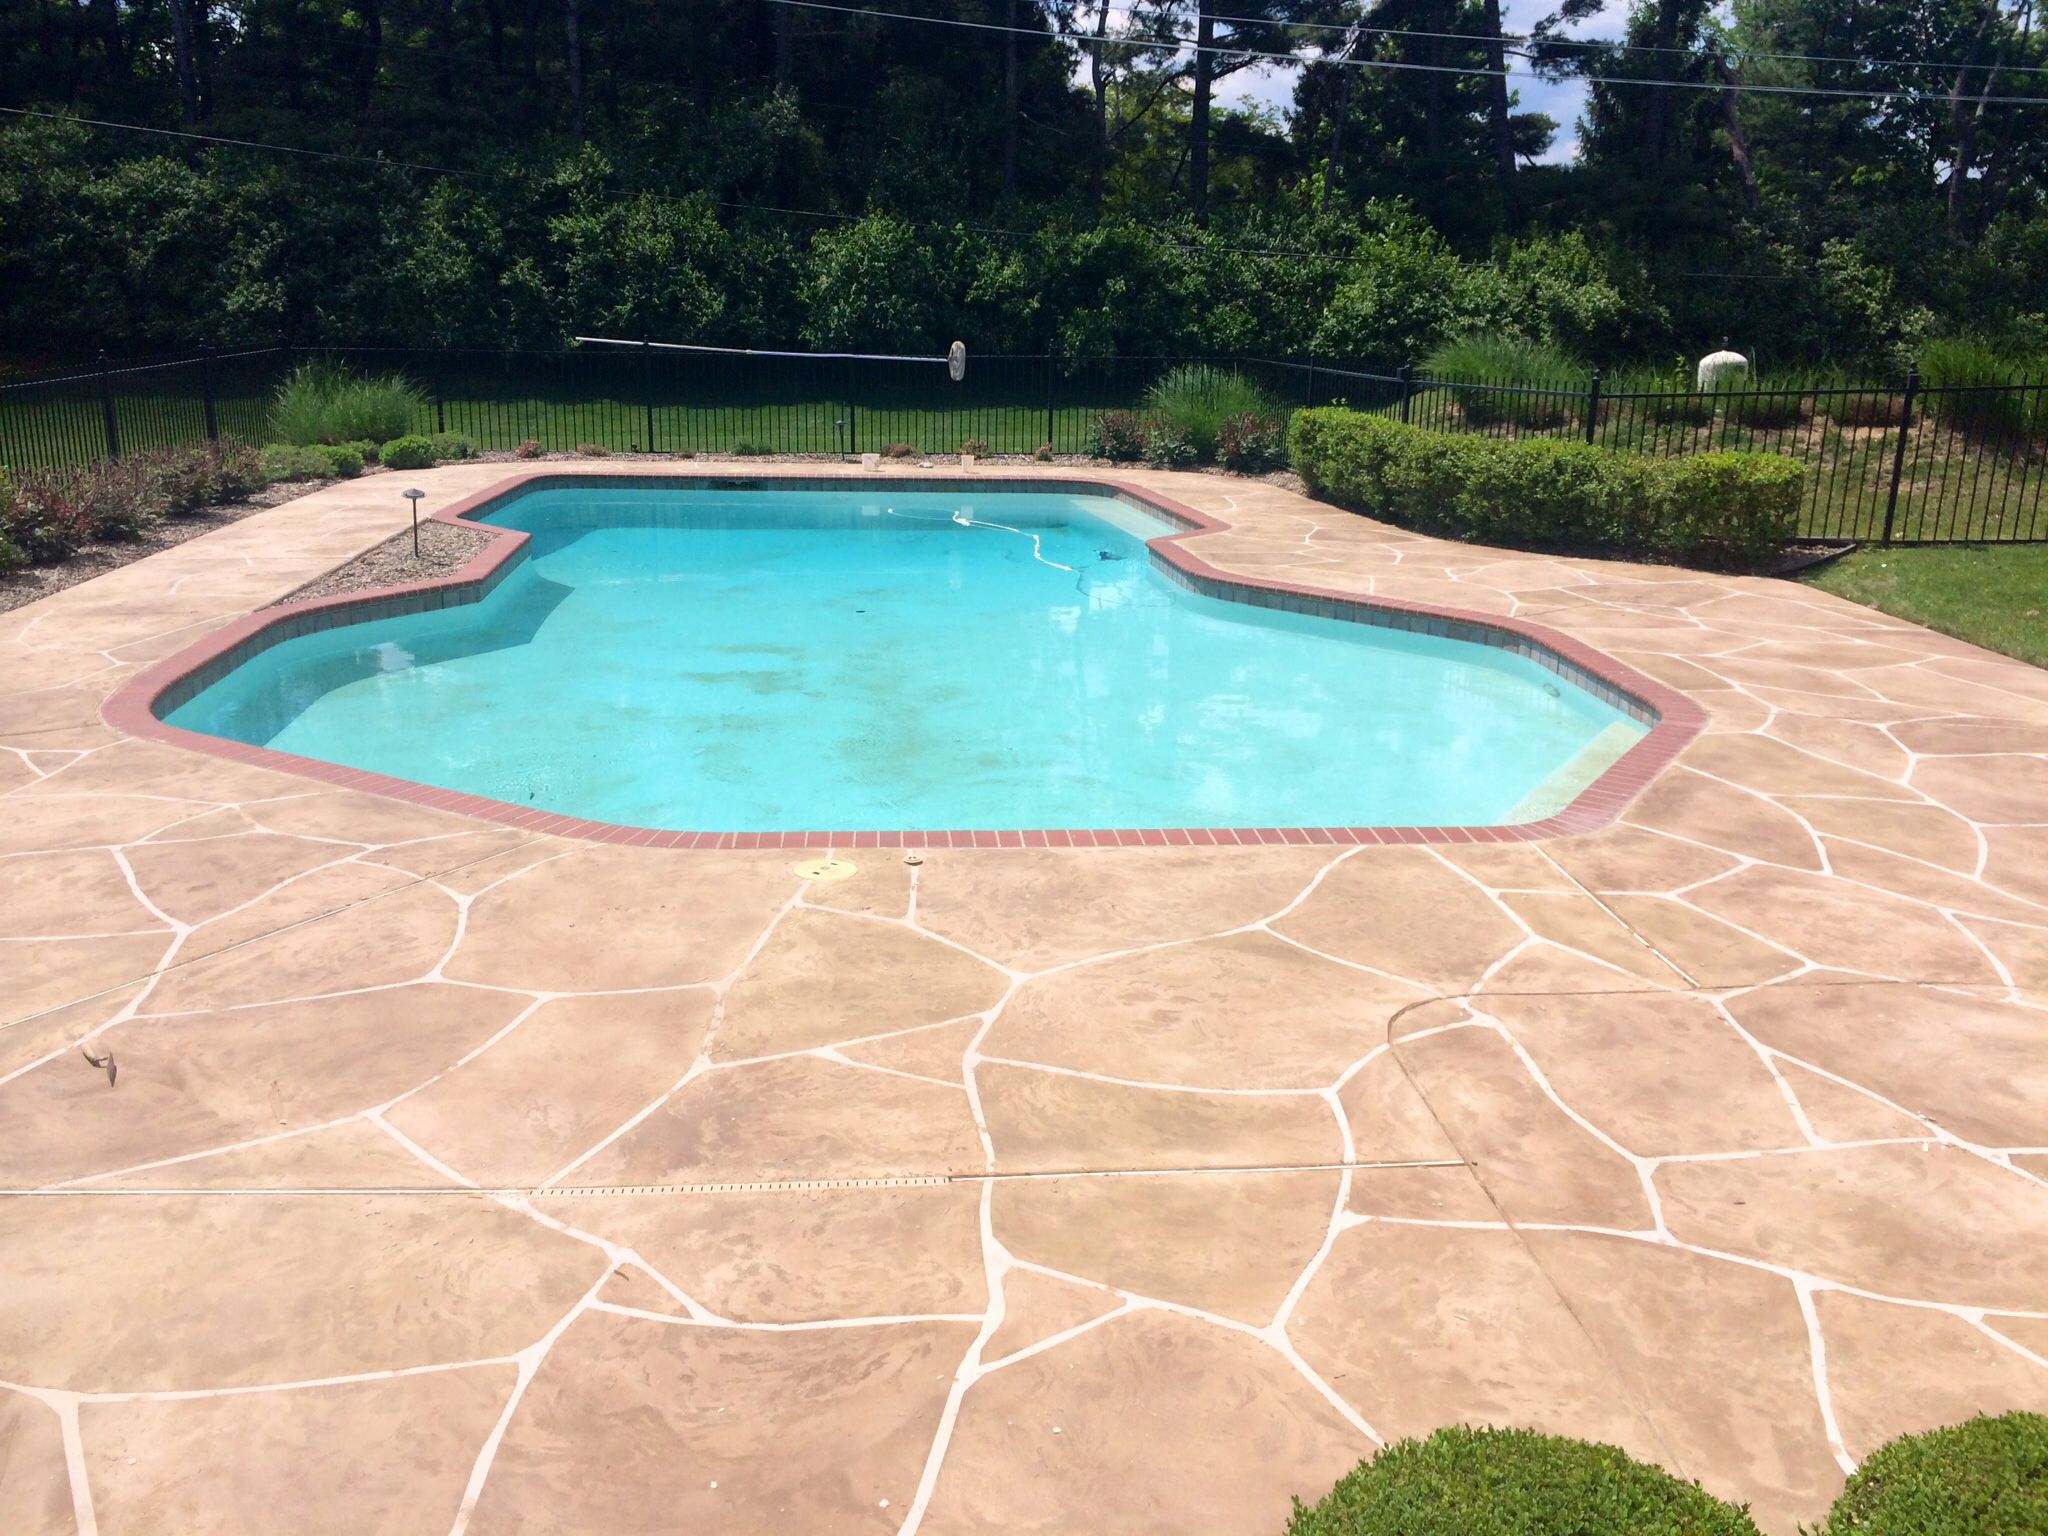 This Pool Deck Was Recently Transformed With Our Concrete Resurfacing From Plain Concrete To This Beautiful Random Concrete Pool Painted Pool Deck Pool Decks